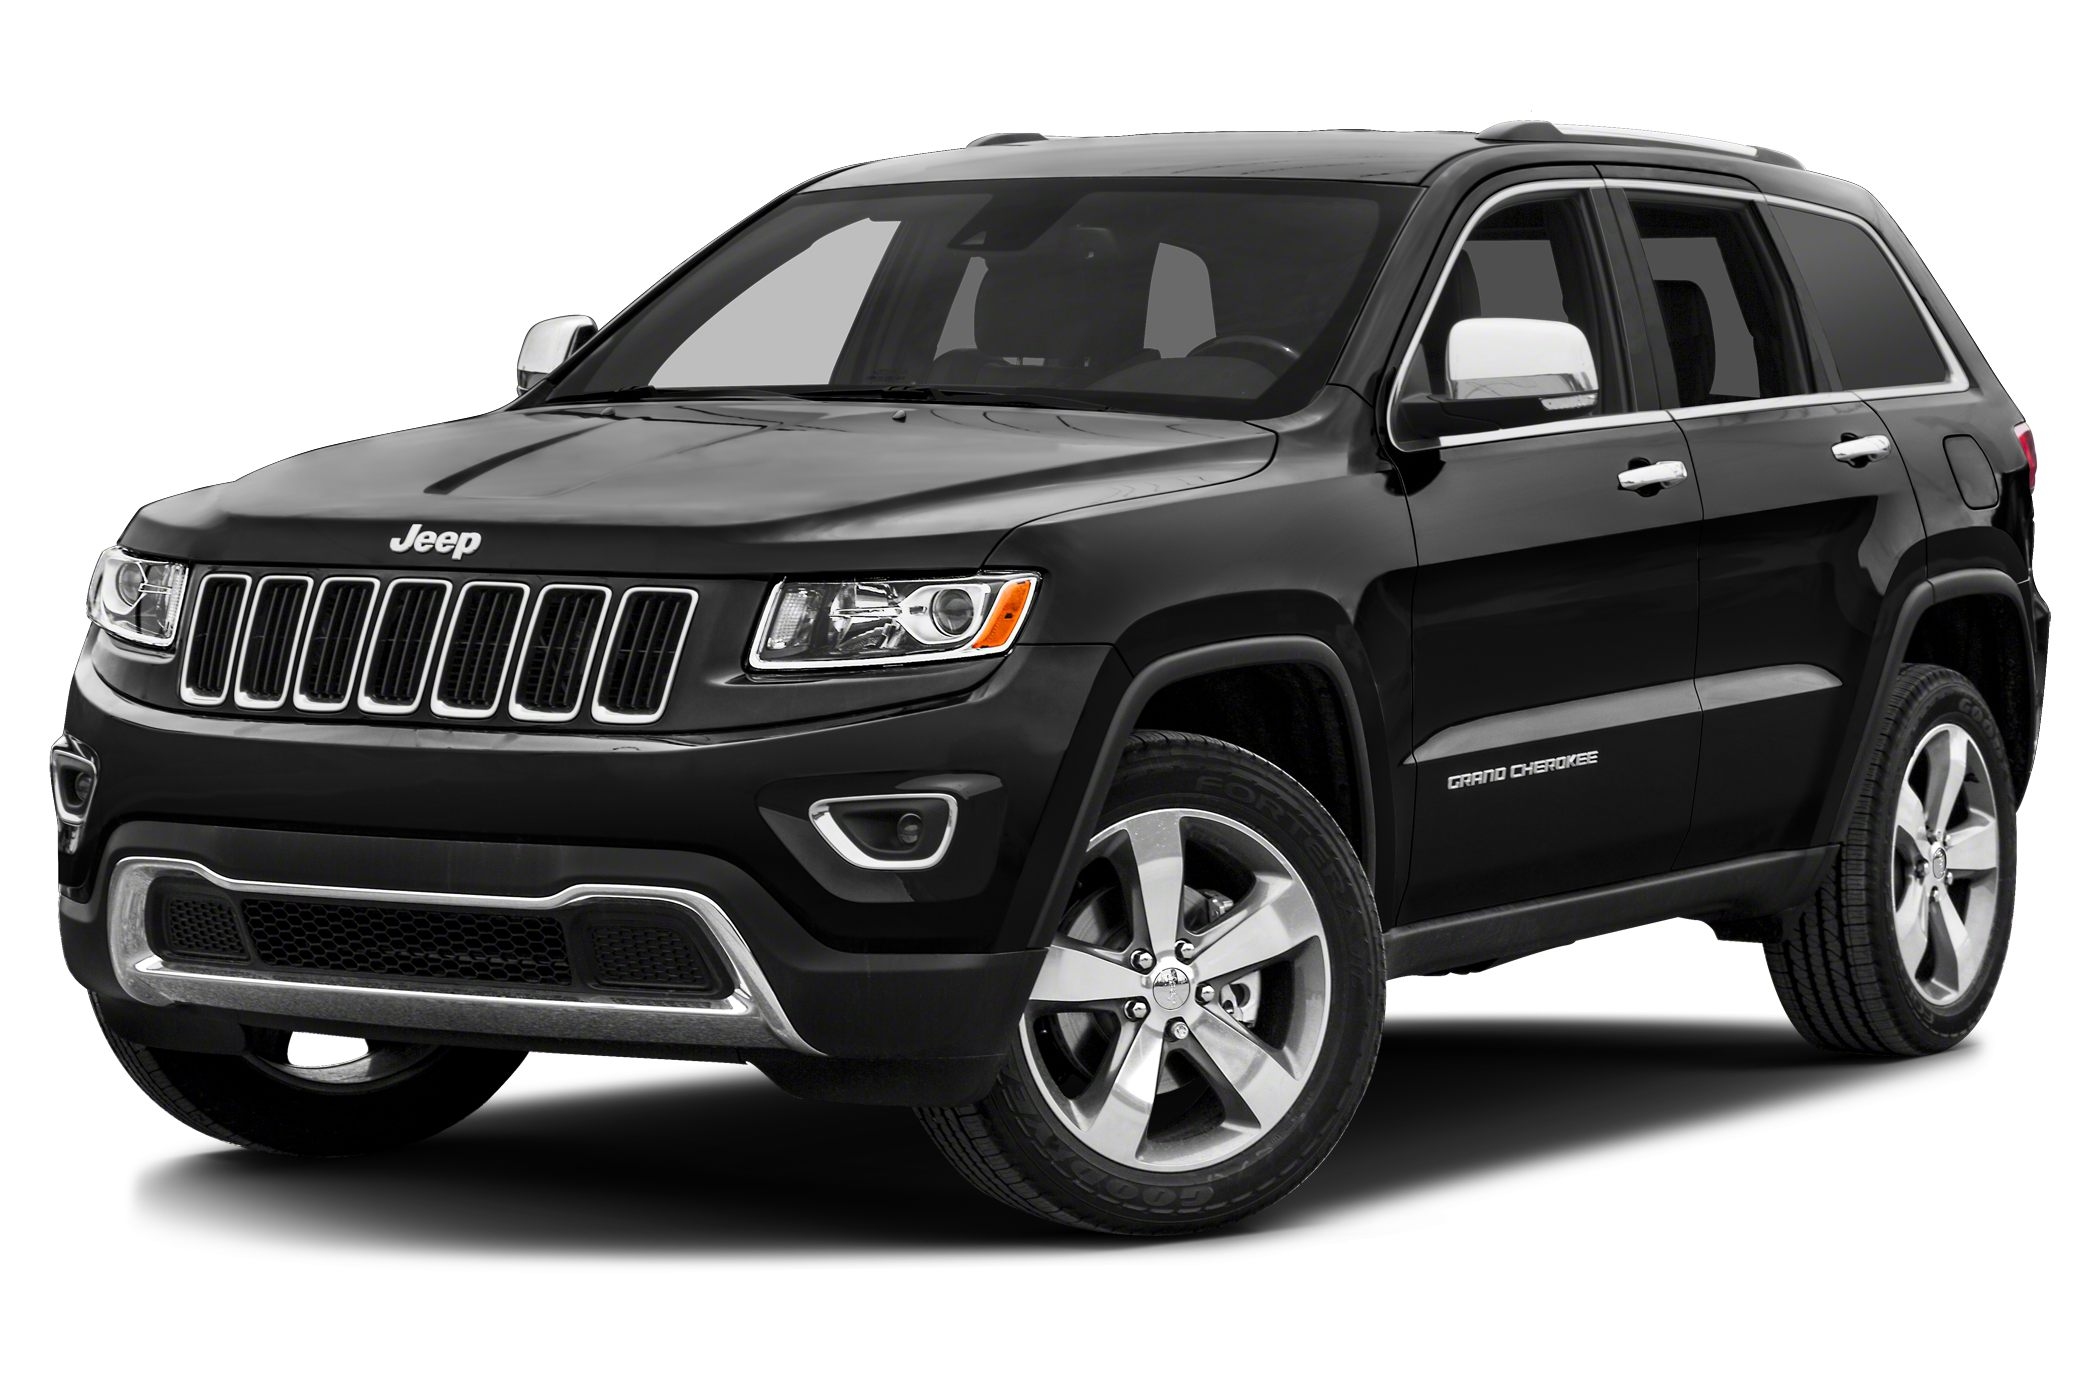 2015 Jeep Grand Cherokee Laredo SUV for sale in Sacramento for $35,585 with 0 miles.